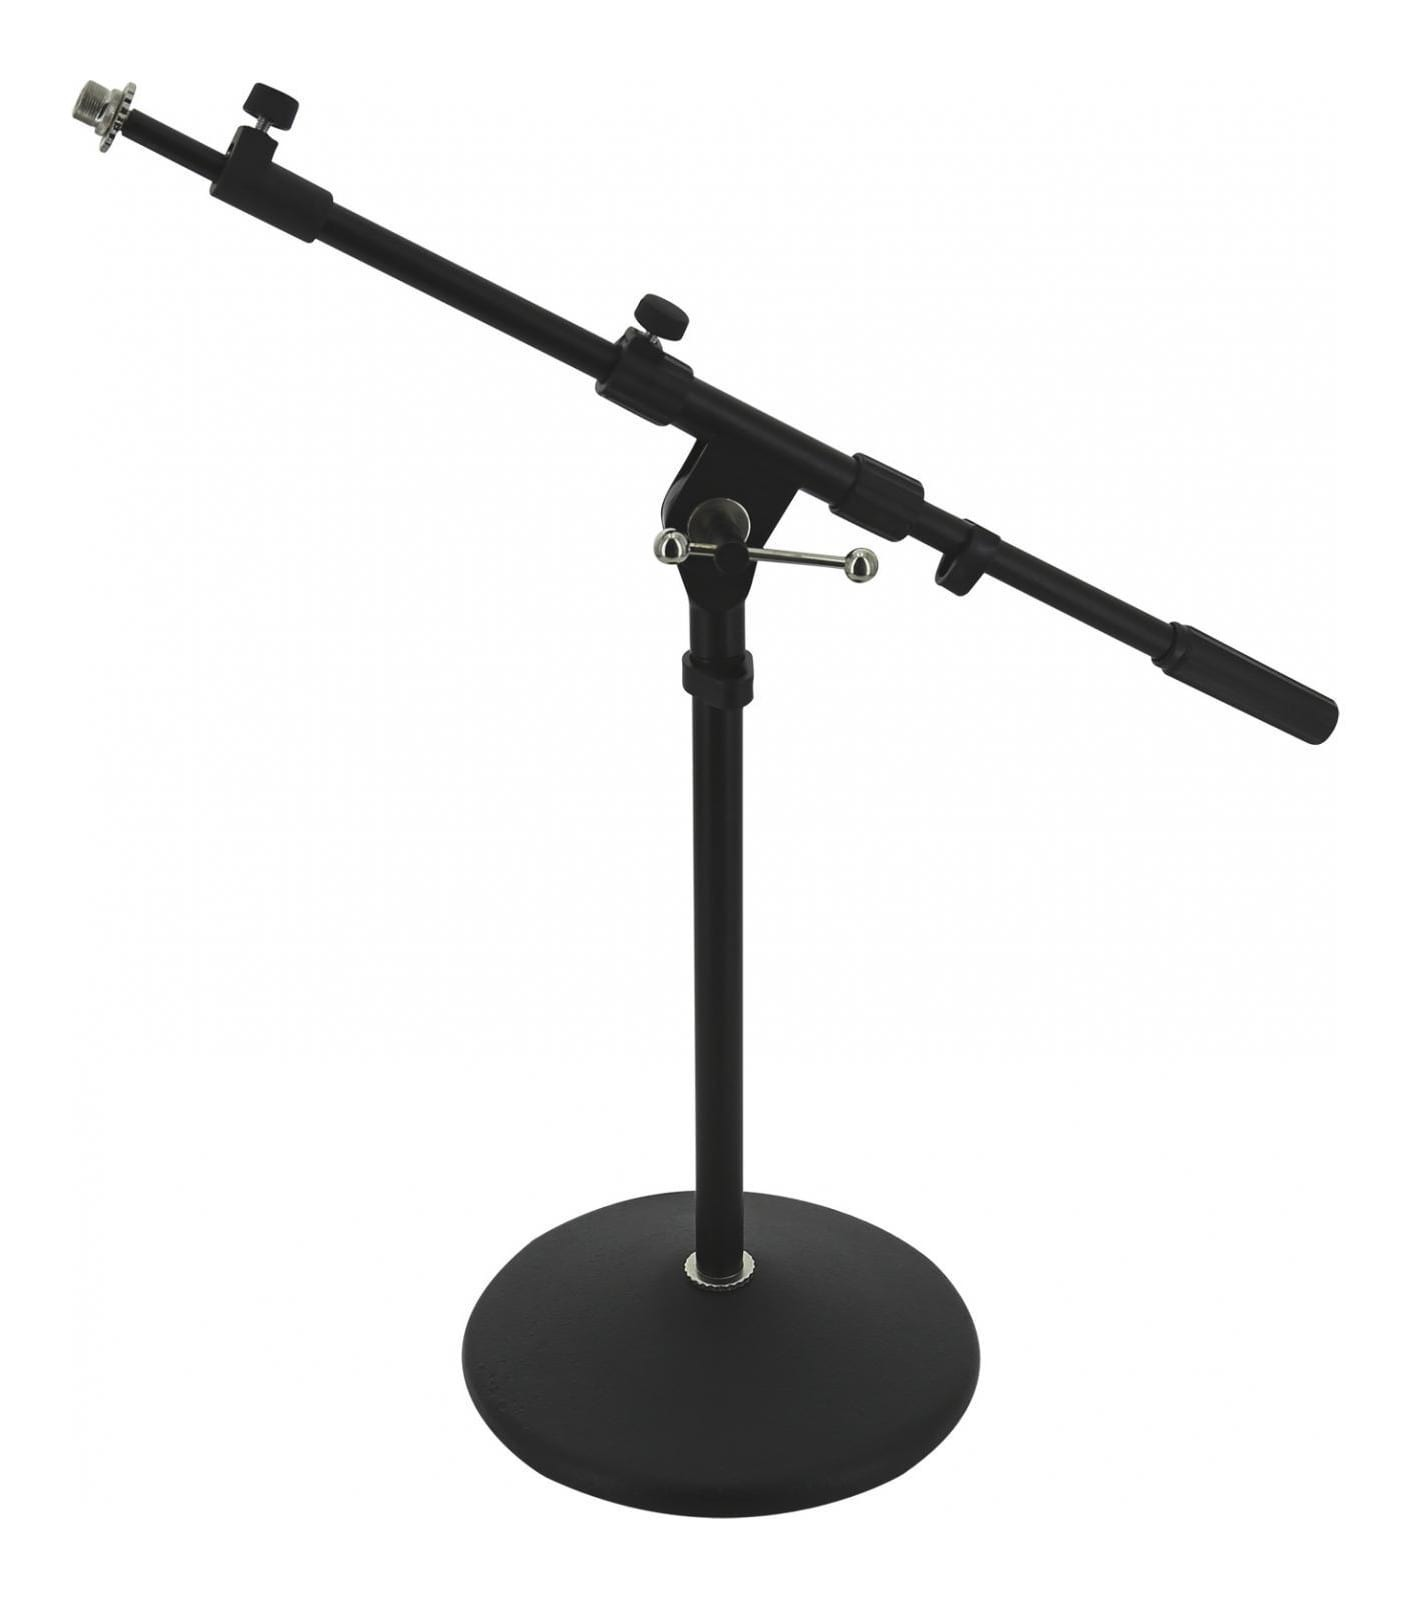 Versatile Mini Microphone Stand - Round Base